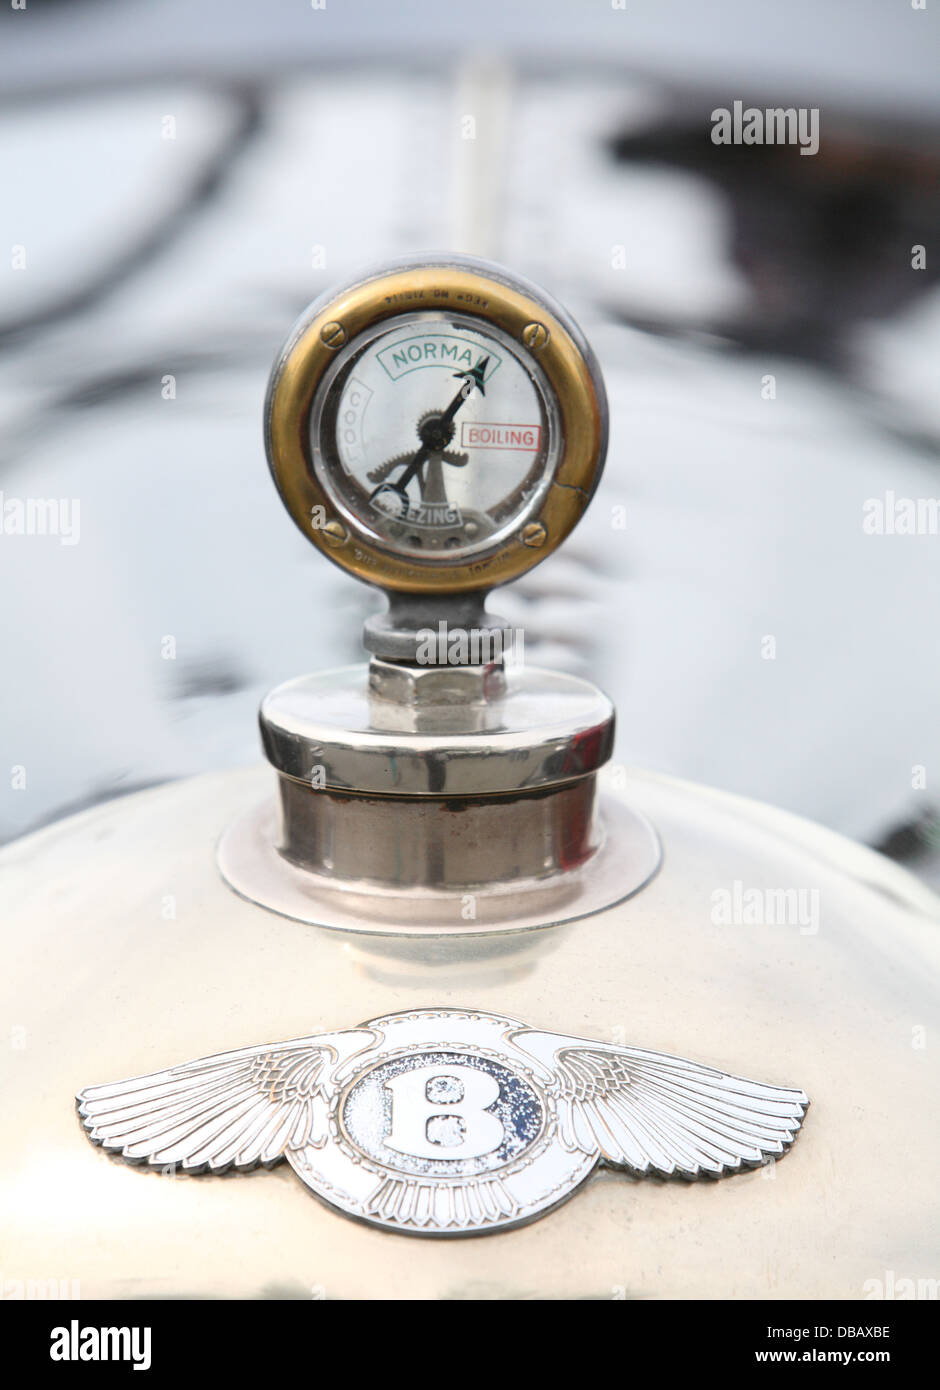 Bentley hood ornament - Stock Image